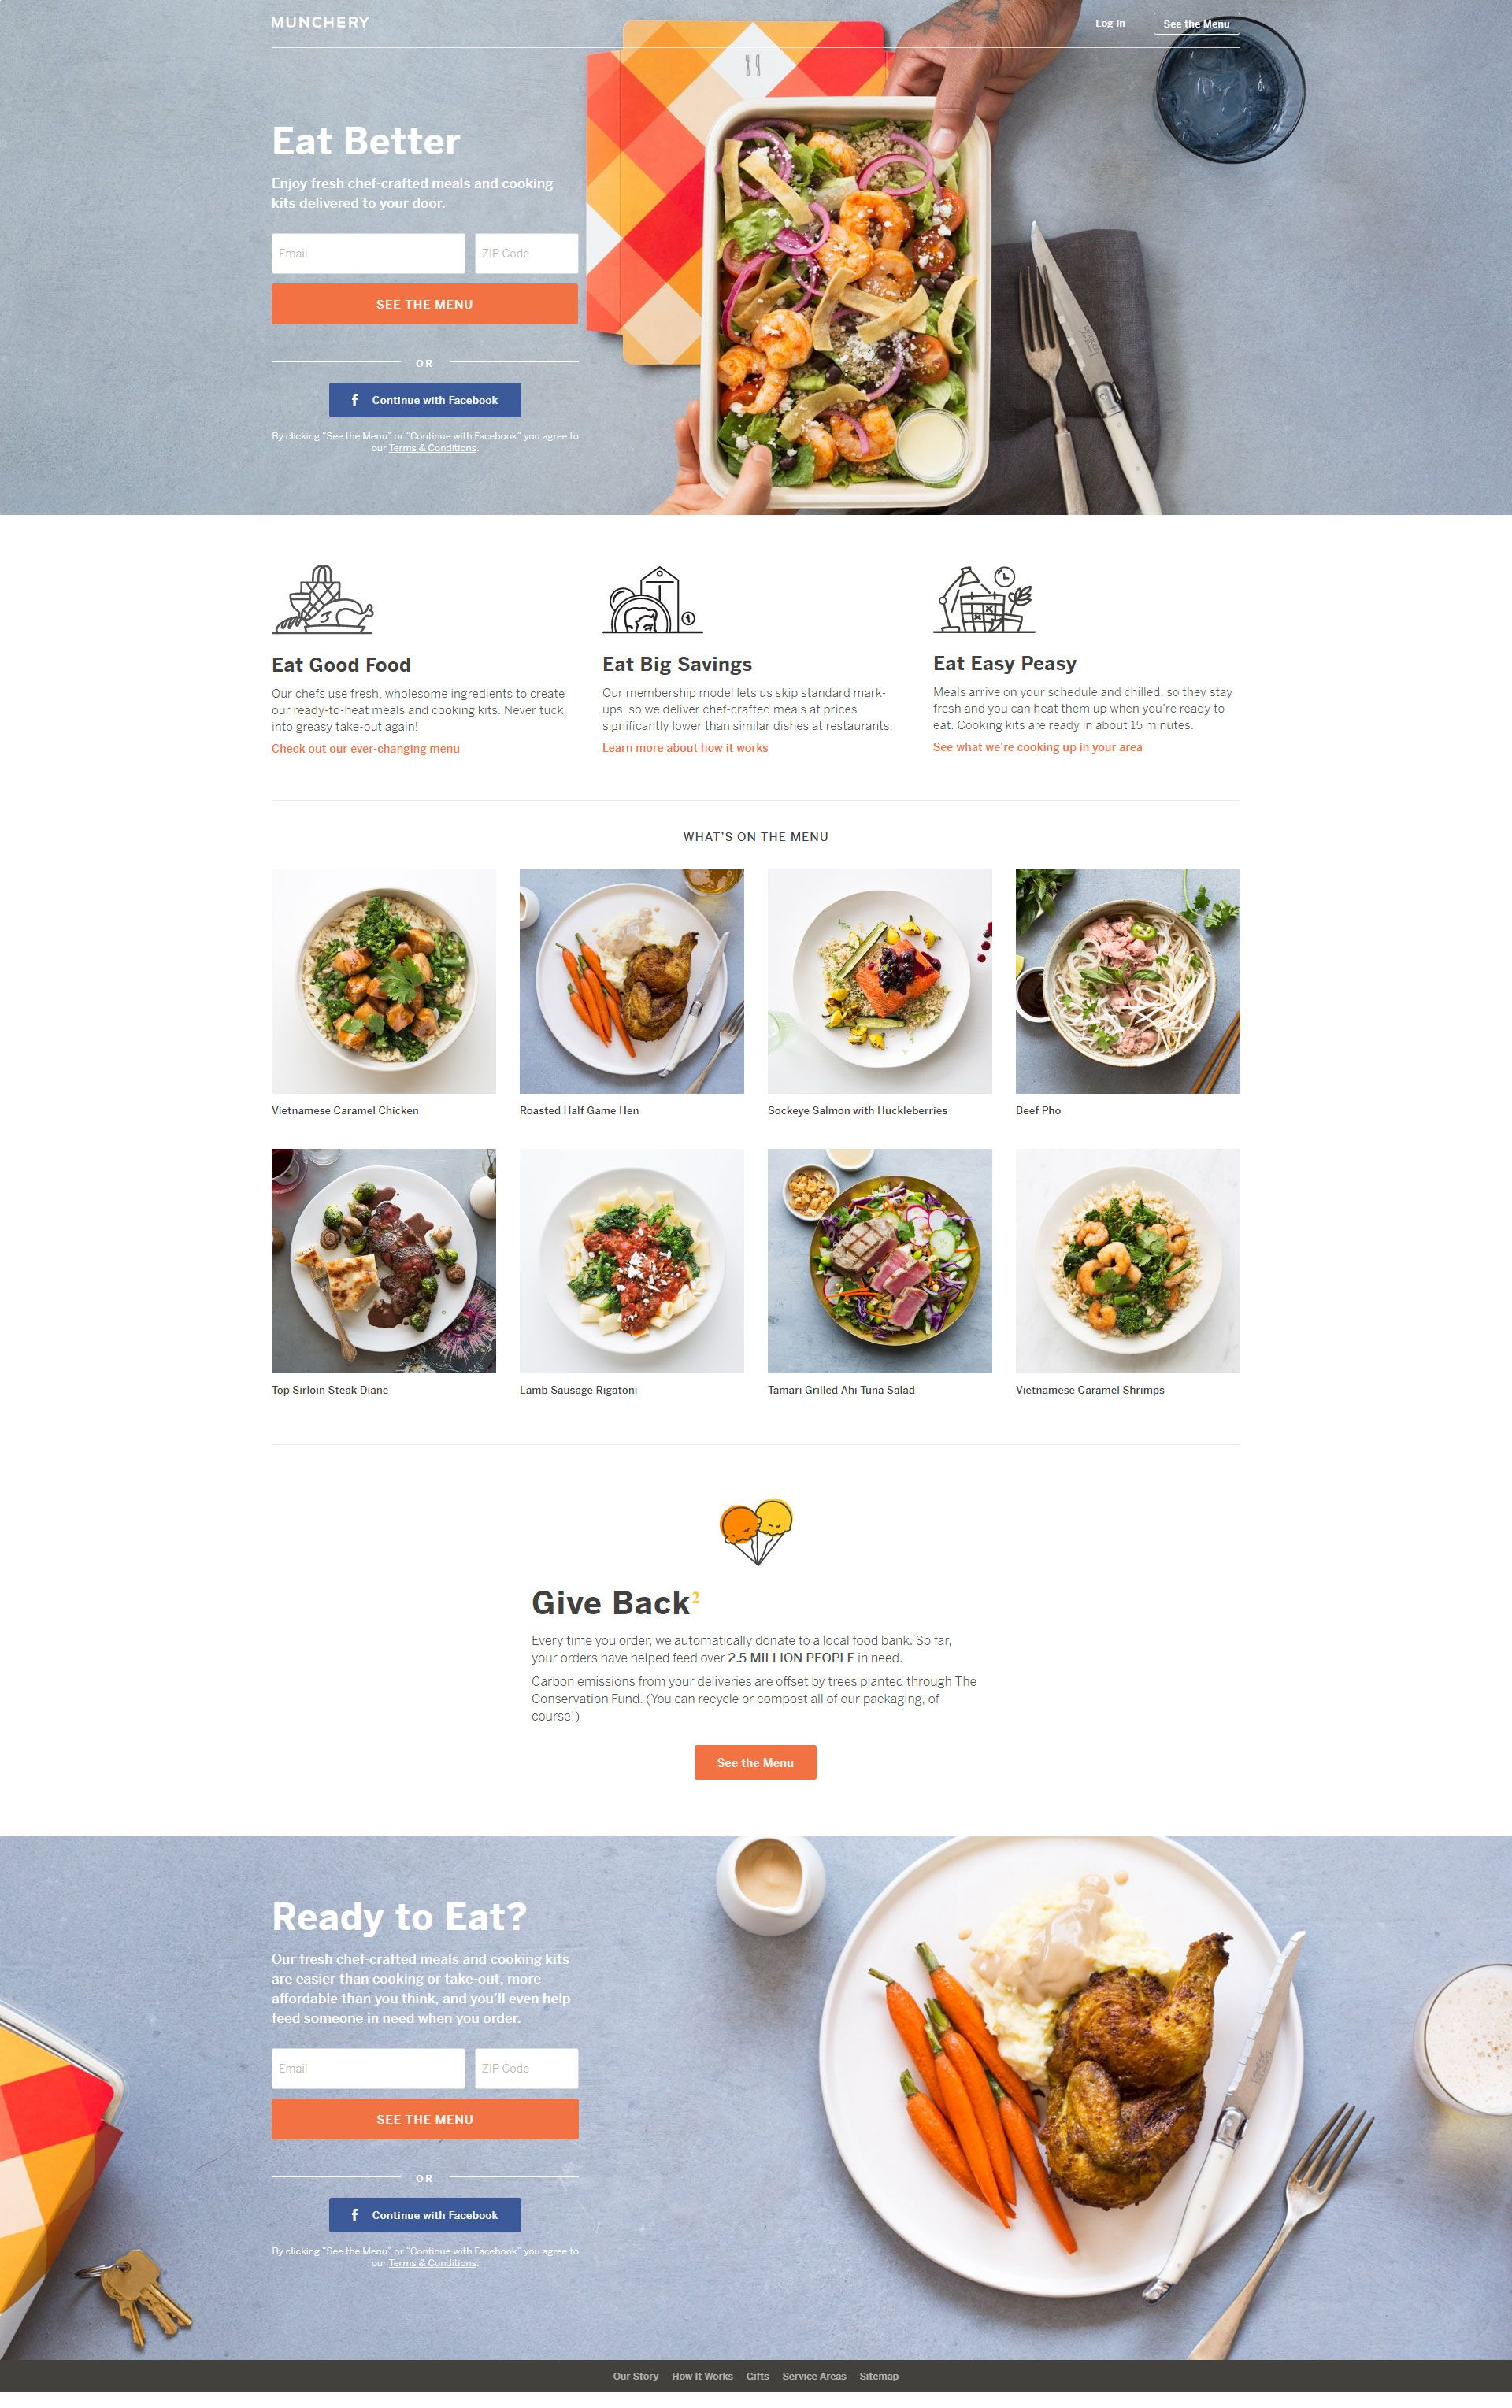 Munchery food delivery service httpsmunchery web food forumfinder Images